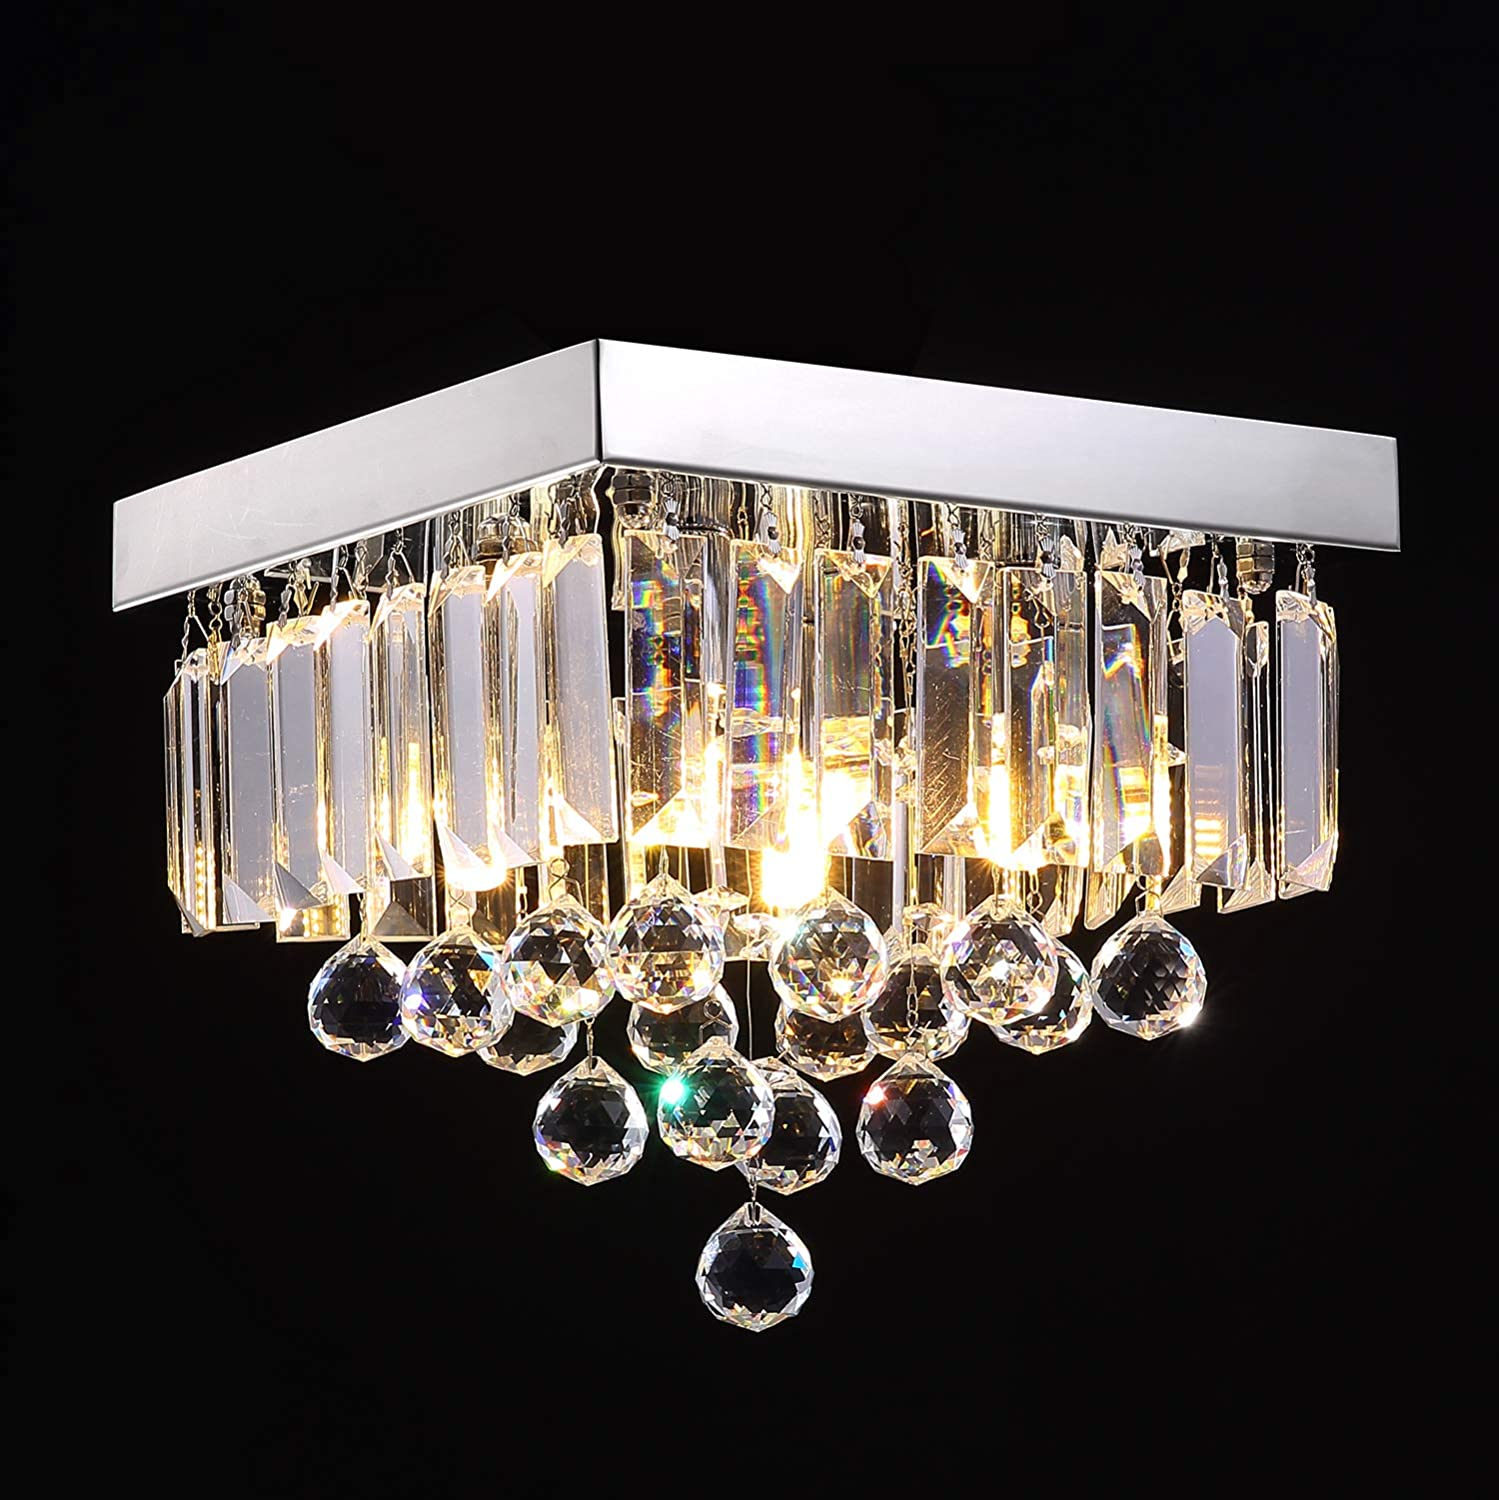 Siljoy Crystal Chandelier Lighting for Hallway Modern Raindrop Design Ceiling Light W10 x H9